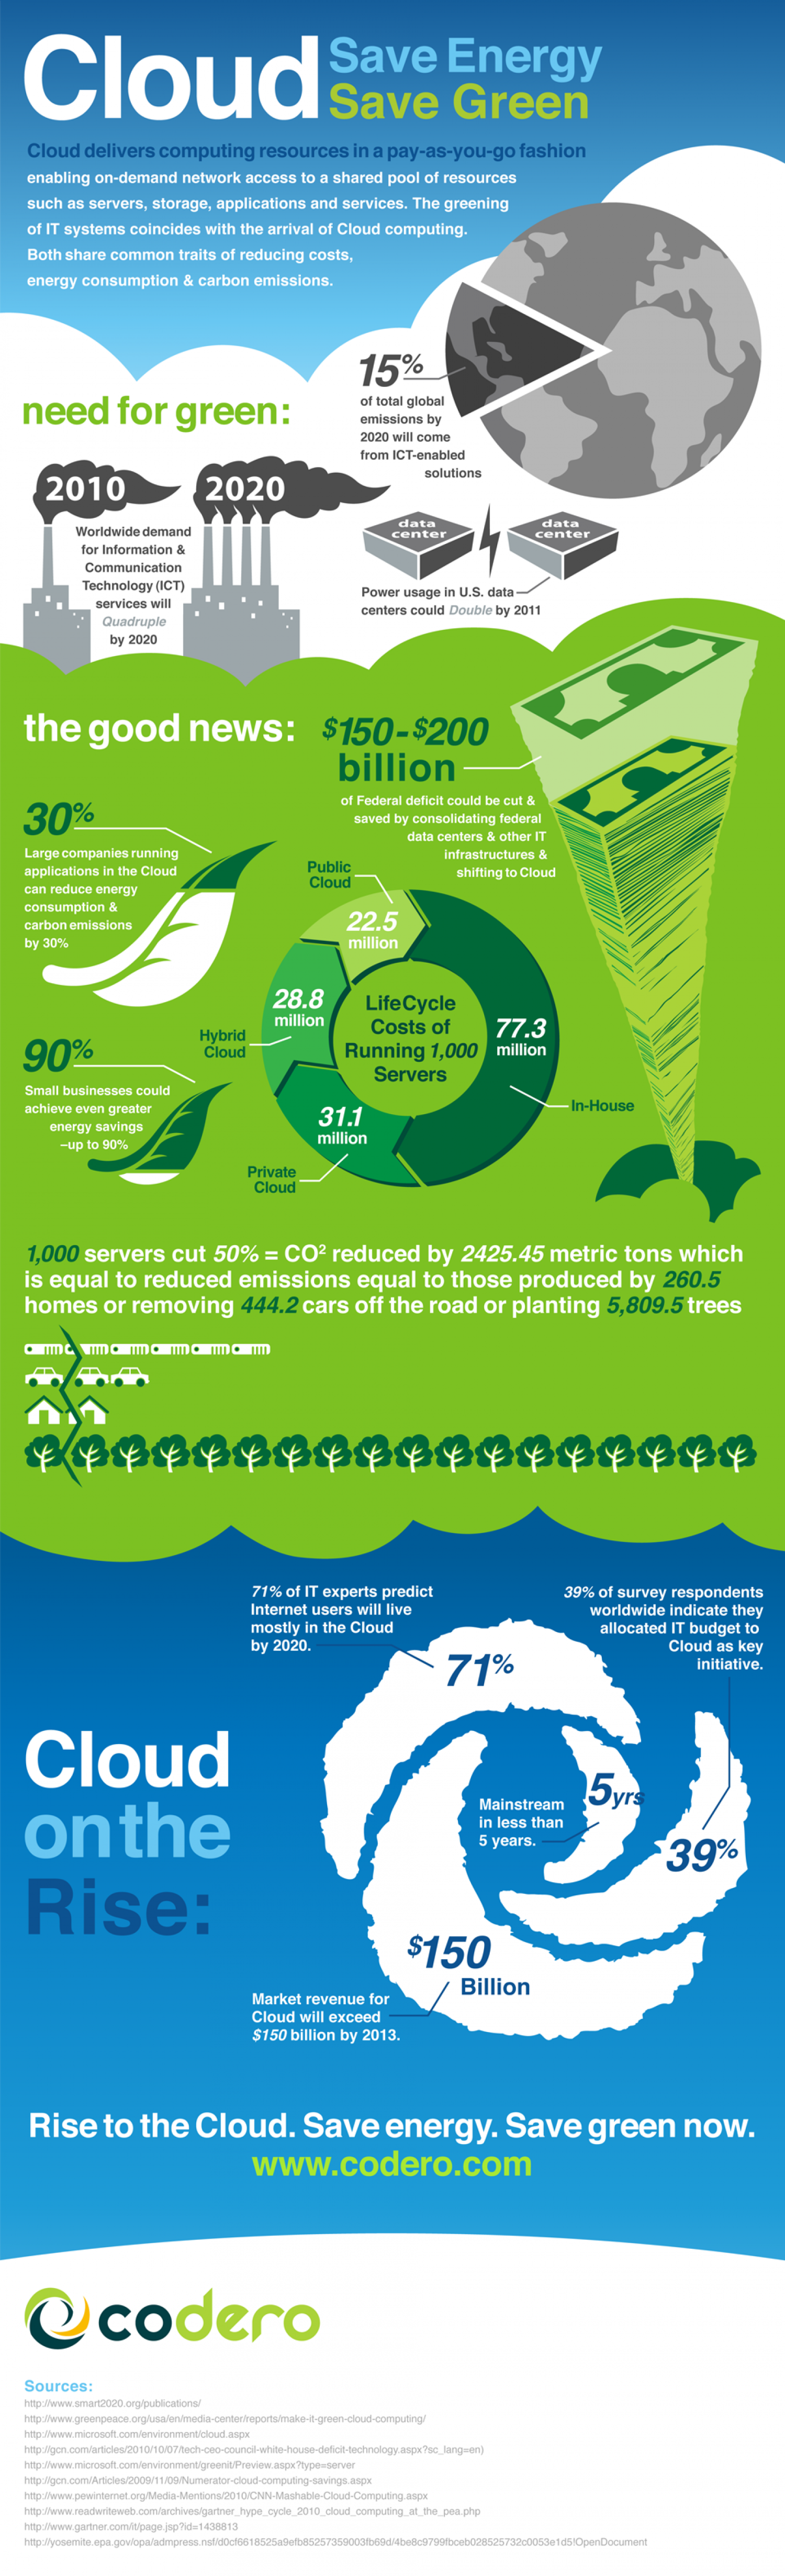 Cloud Save Energy Save Green  Infographic